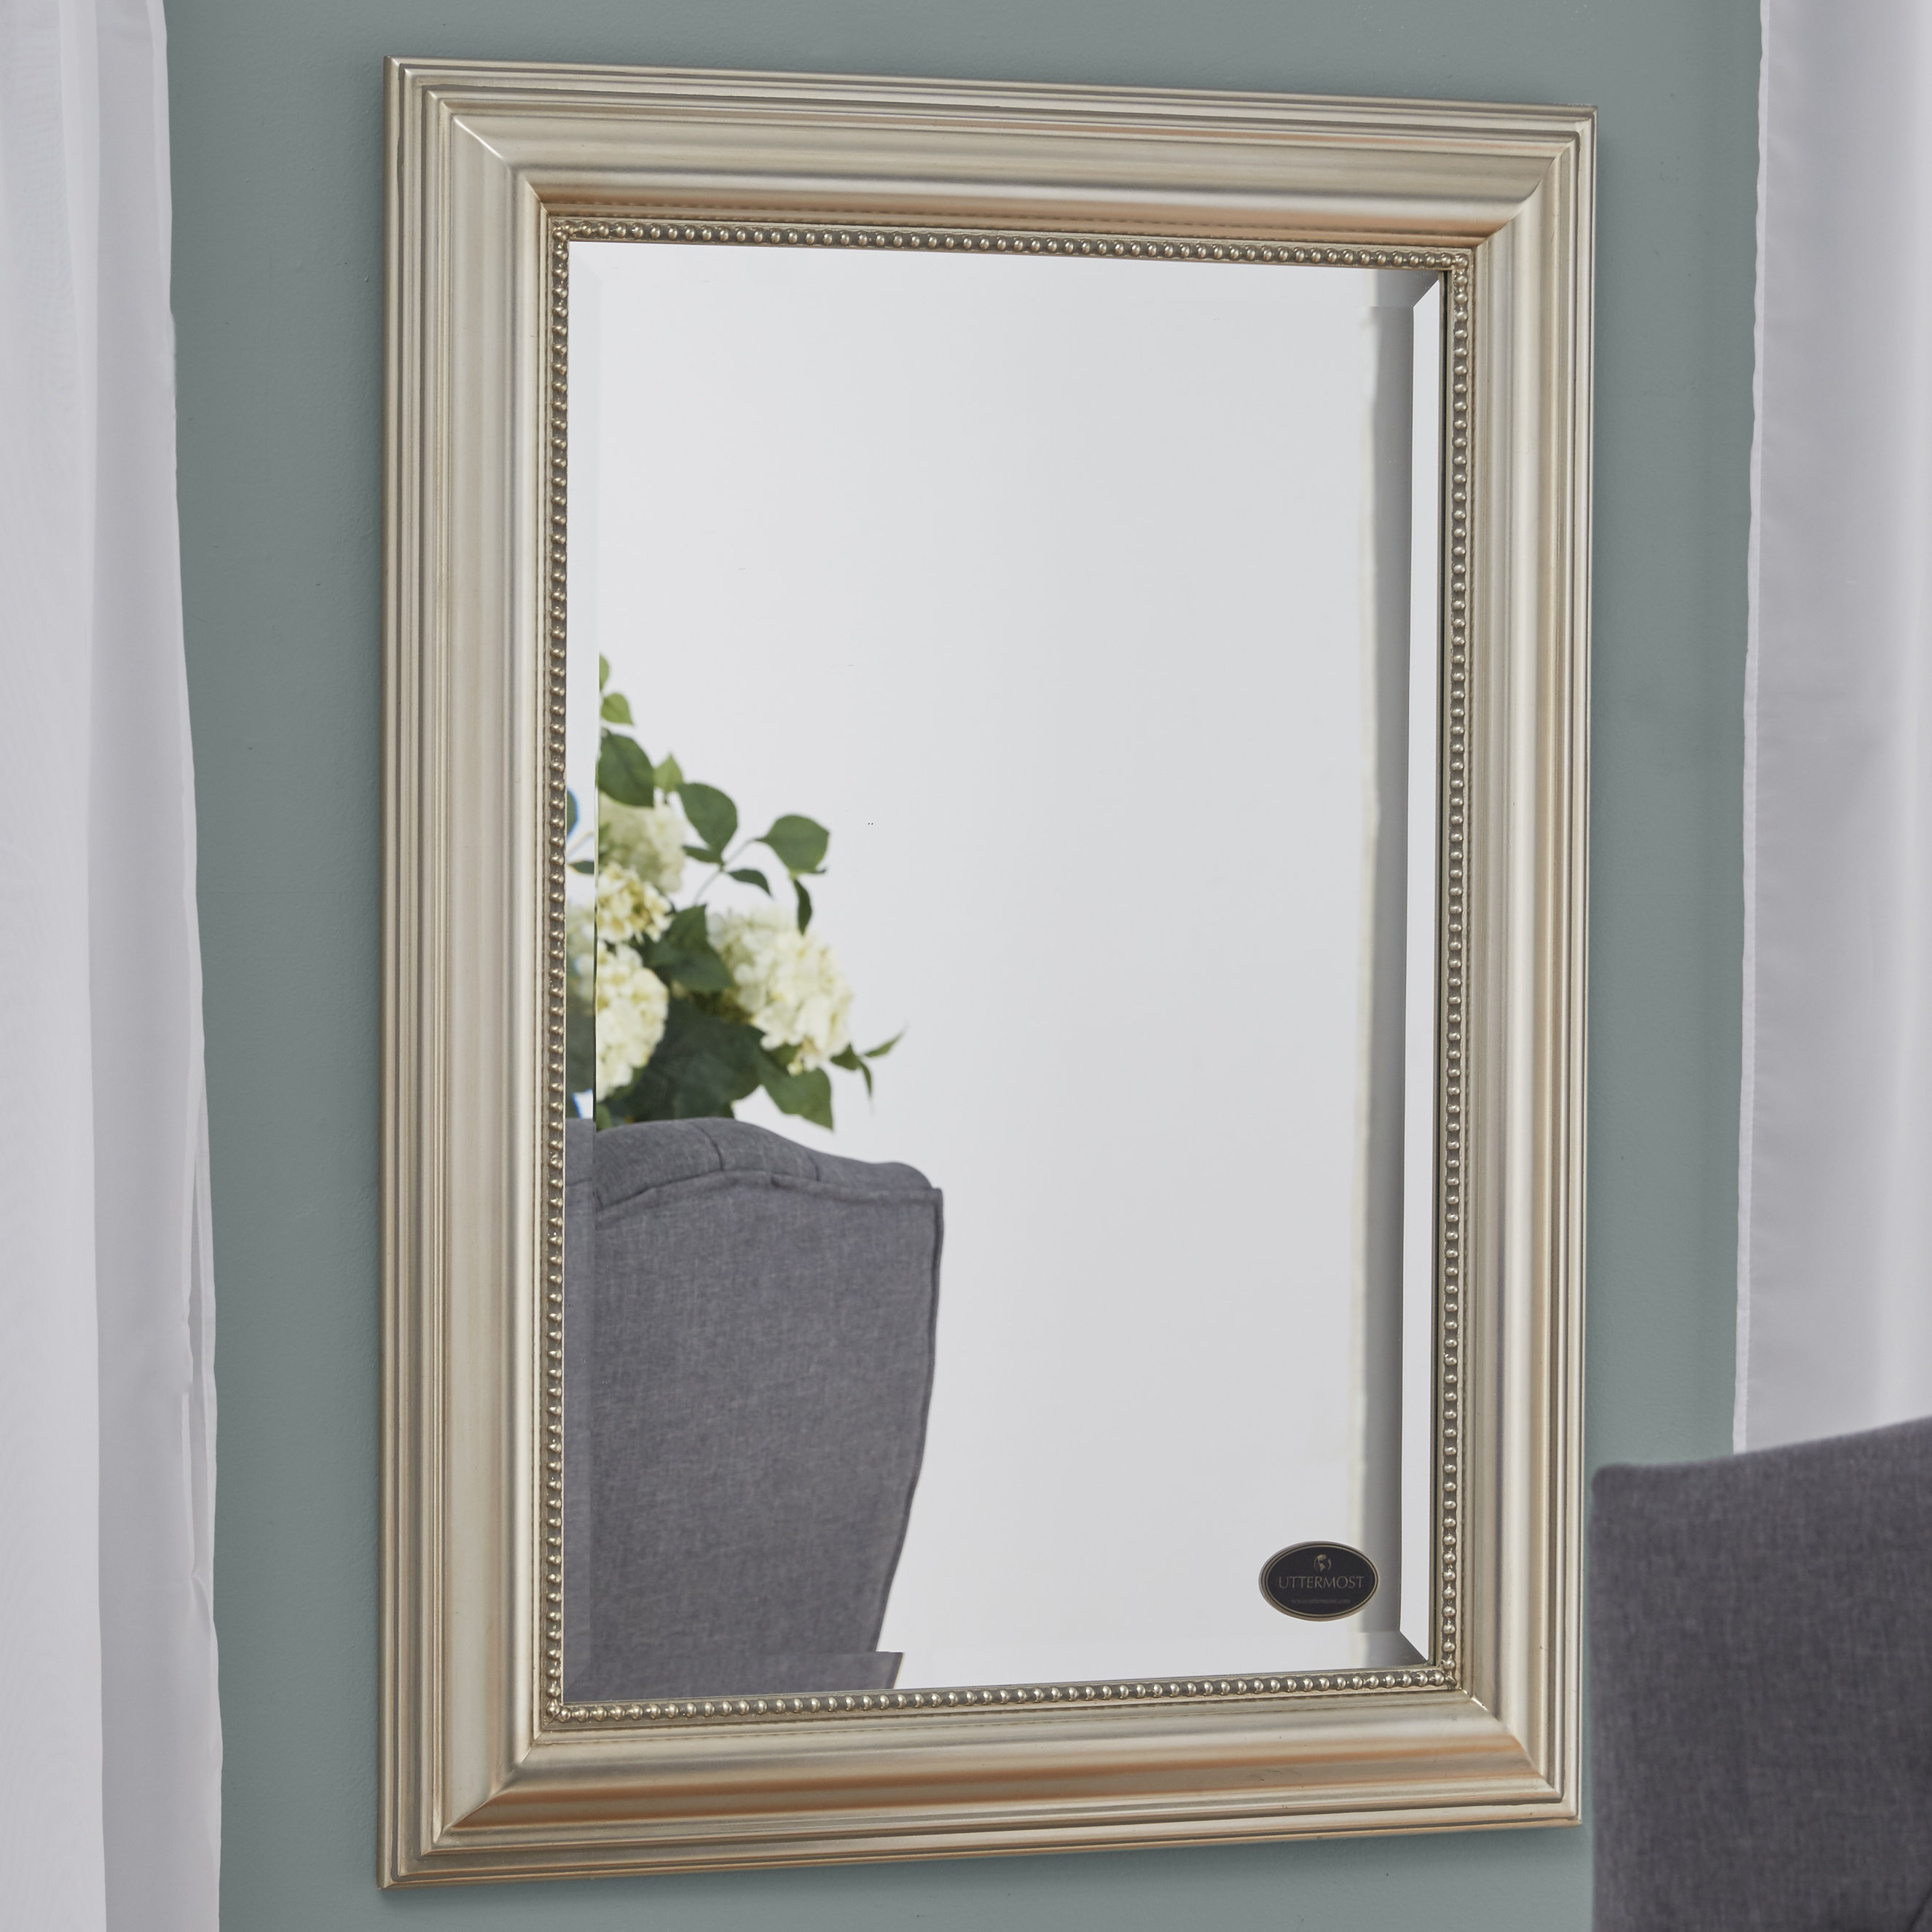 Owens Accent Mirror & Reviews | Joss & Main Pertaining To Northcutt Accent Mirrors (View 12 of 30)